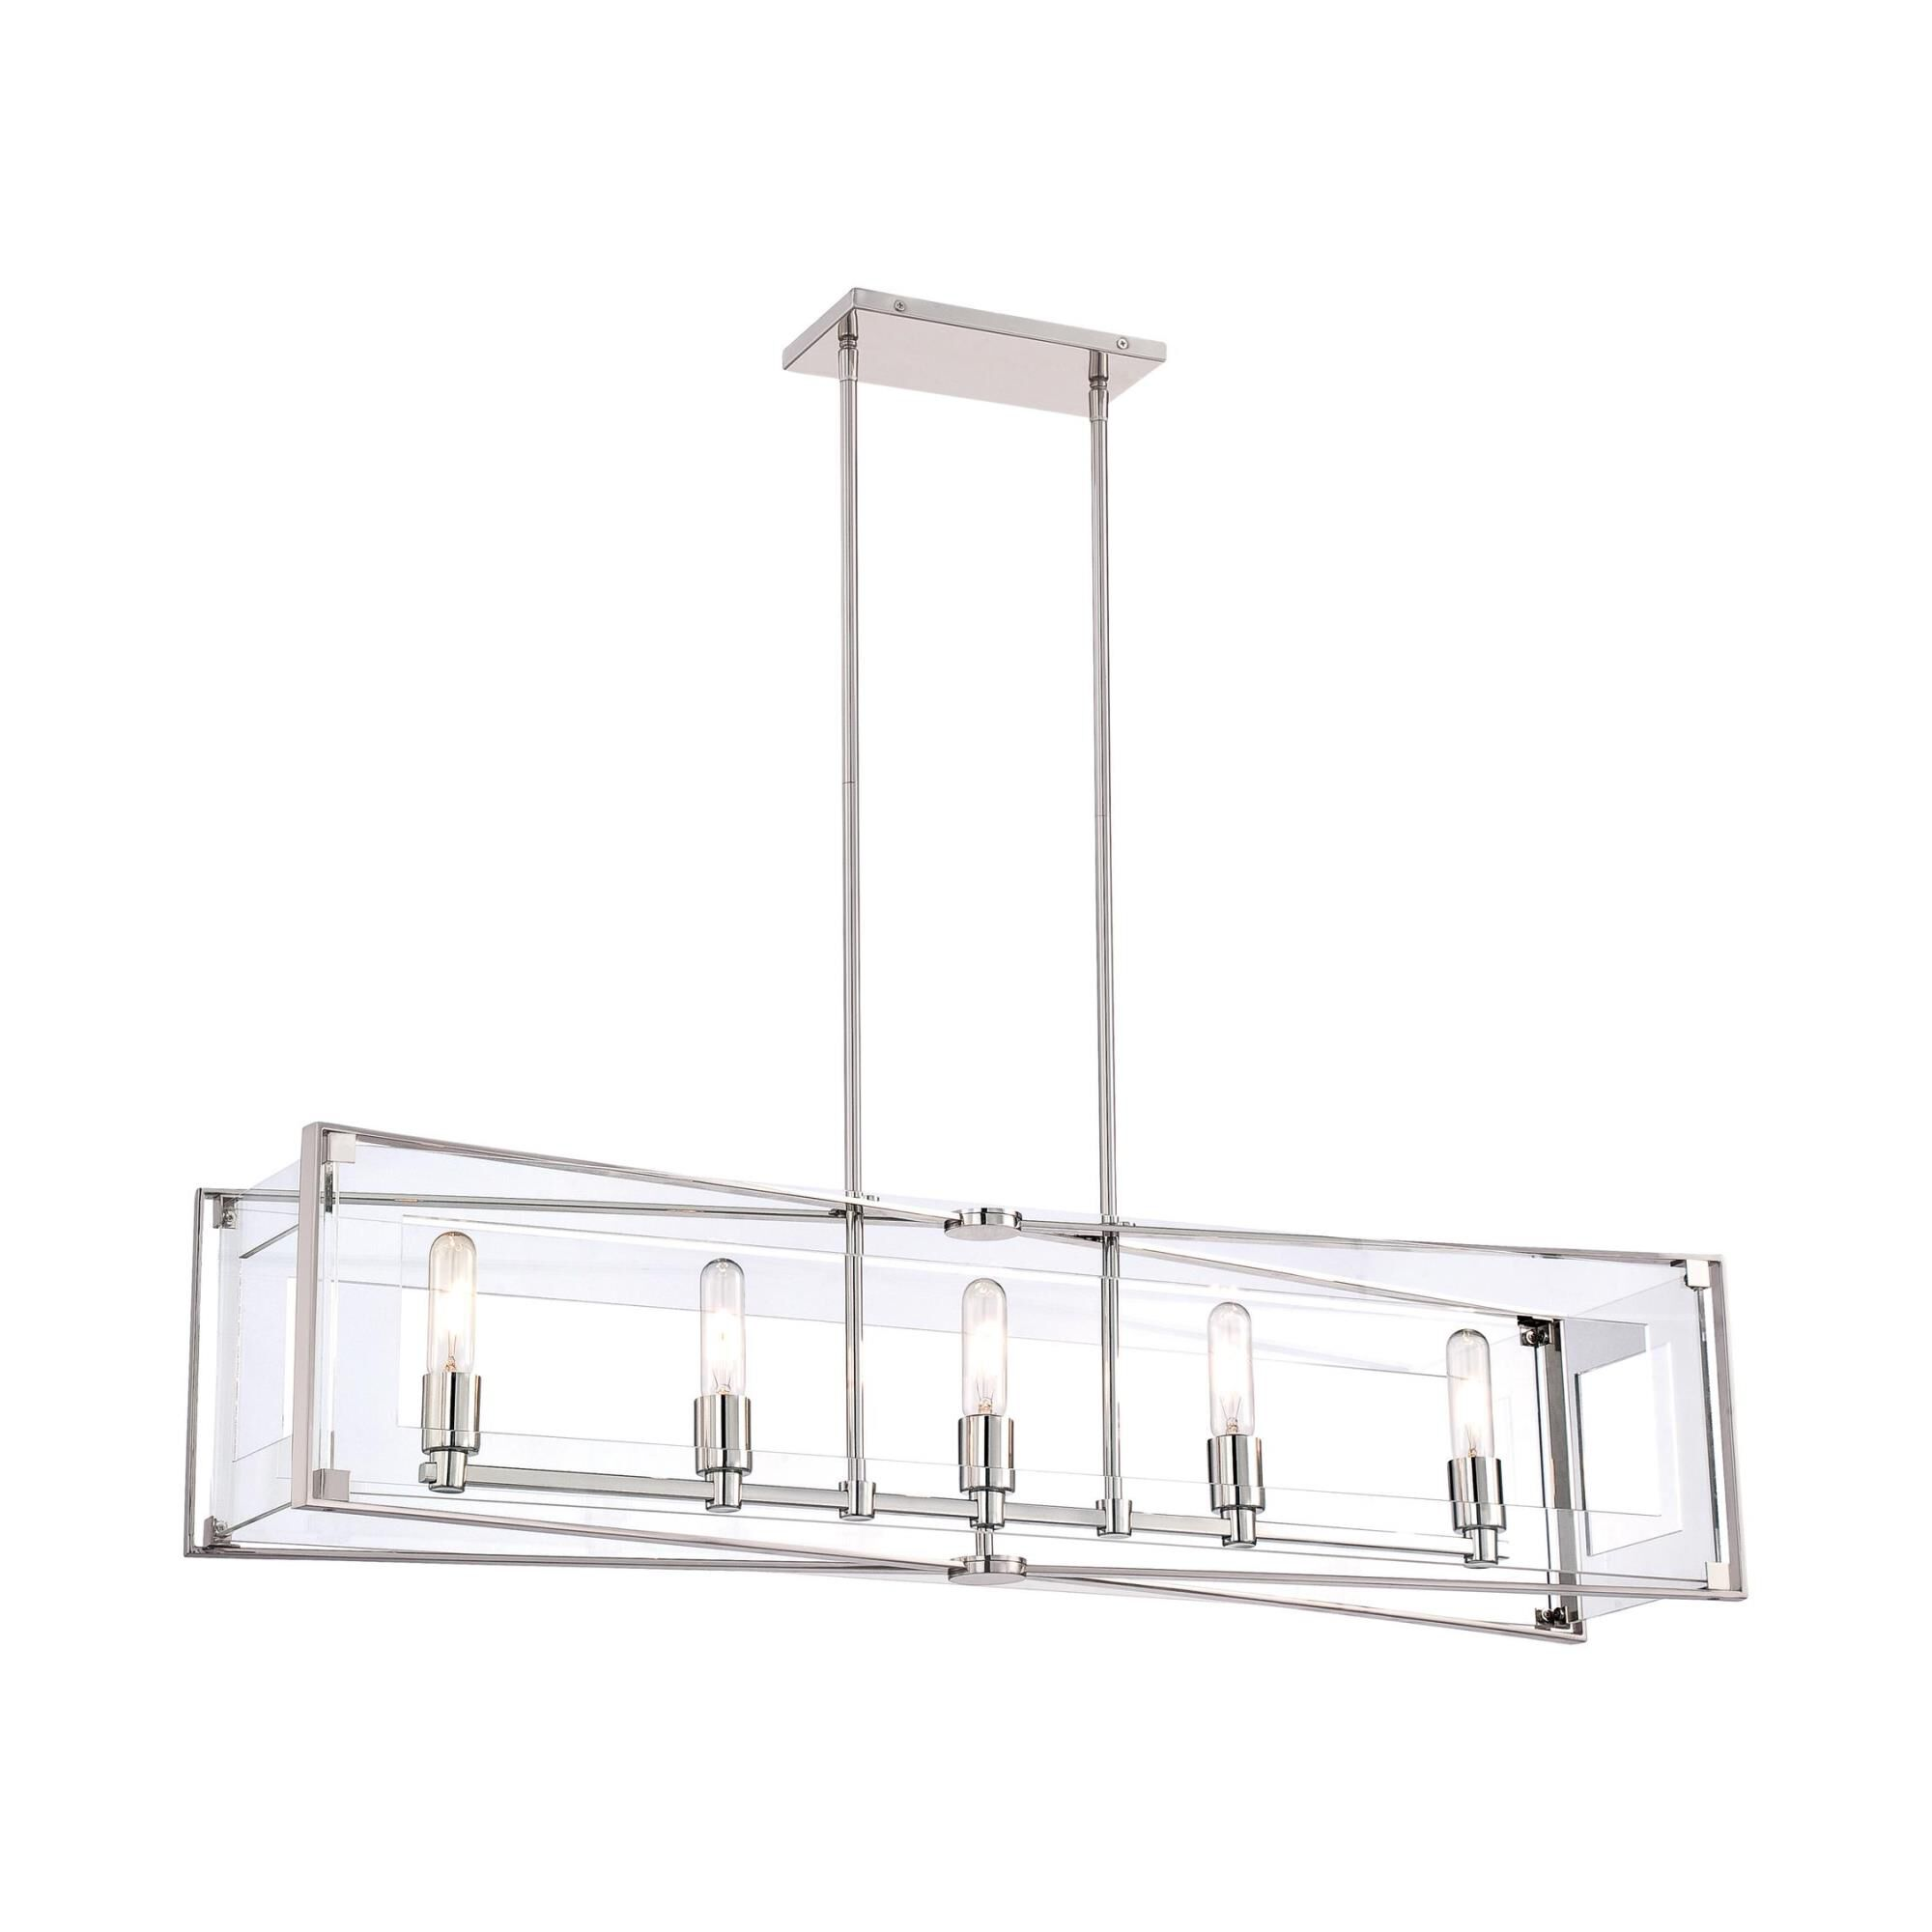 Kovacs Crystal Clear 43 Inch 5 Light Linear Suspension Light Crystal Clear - P1405-613 - Alabaster